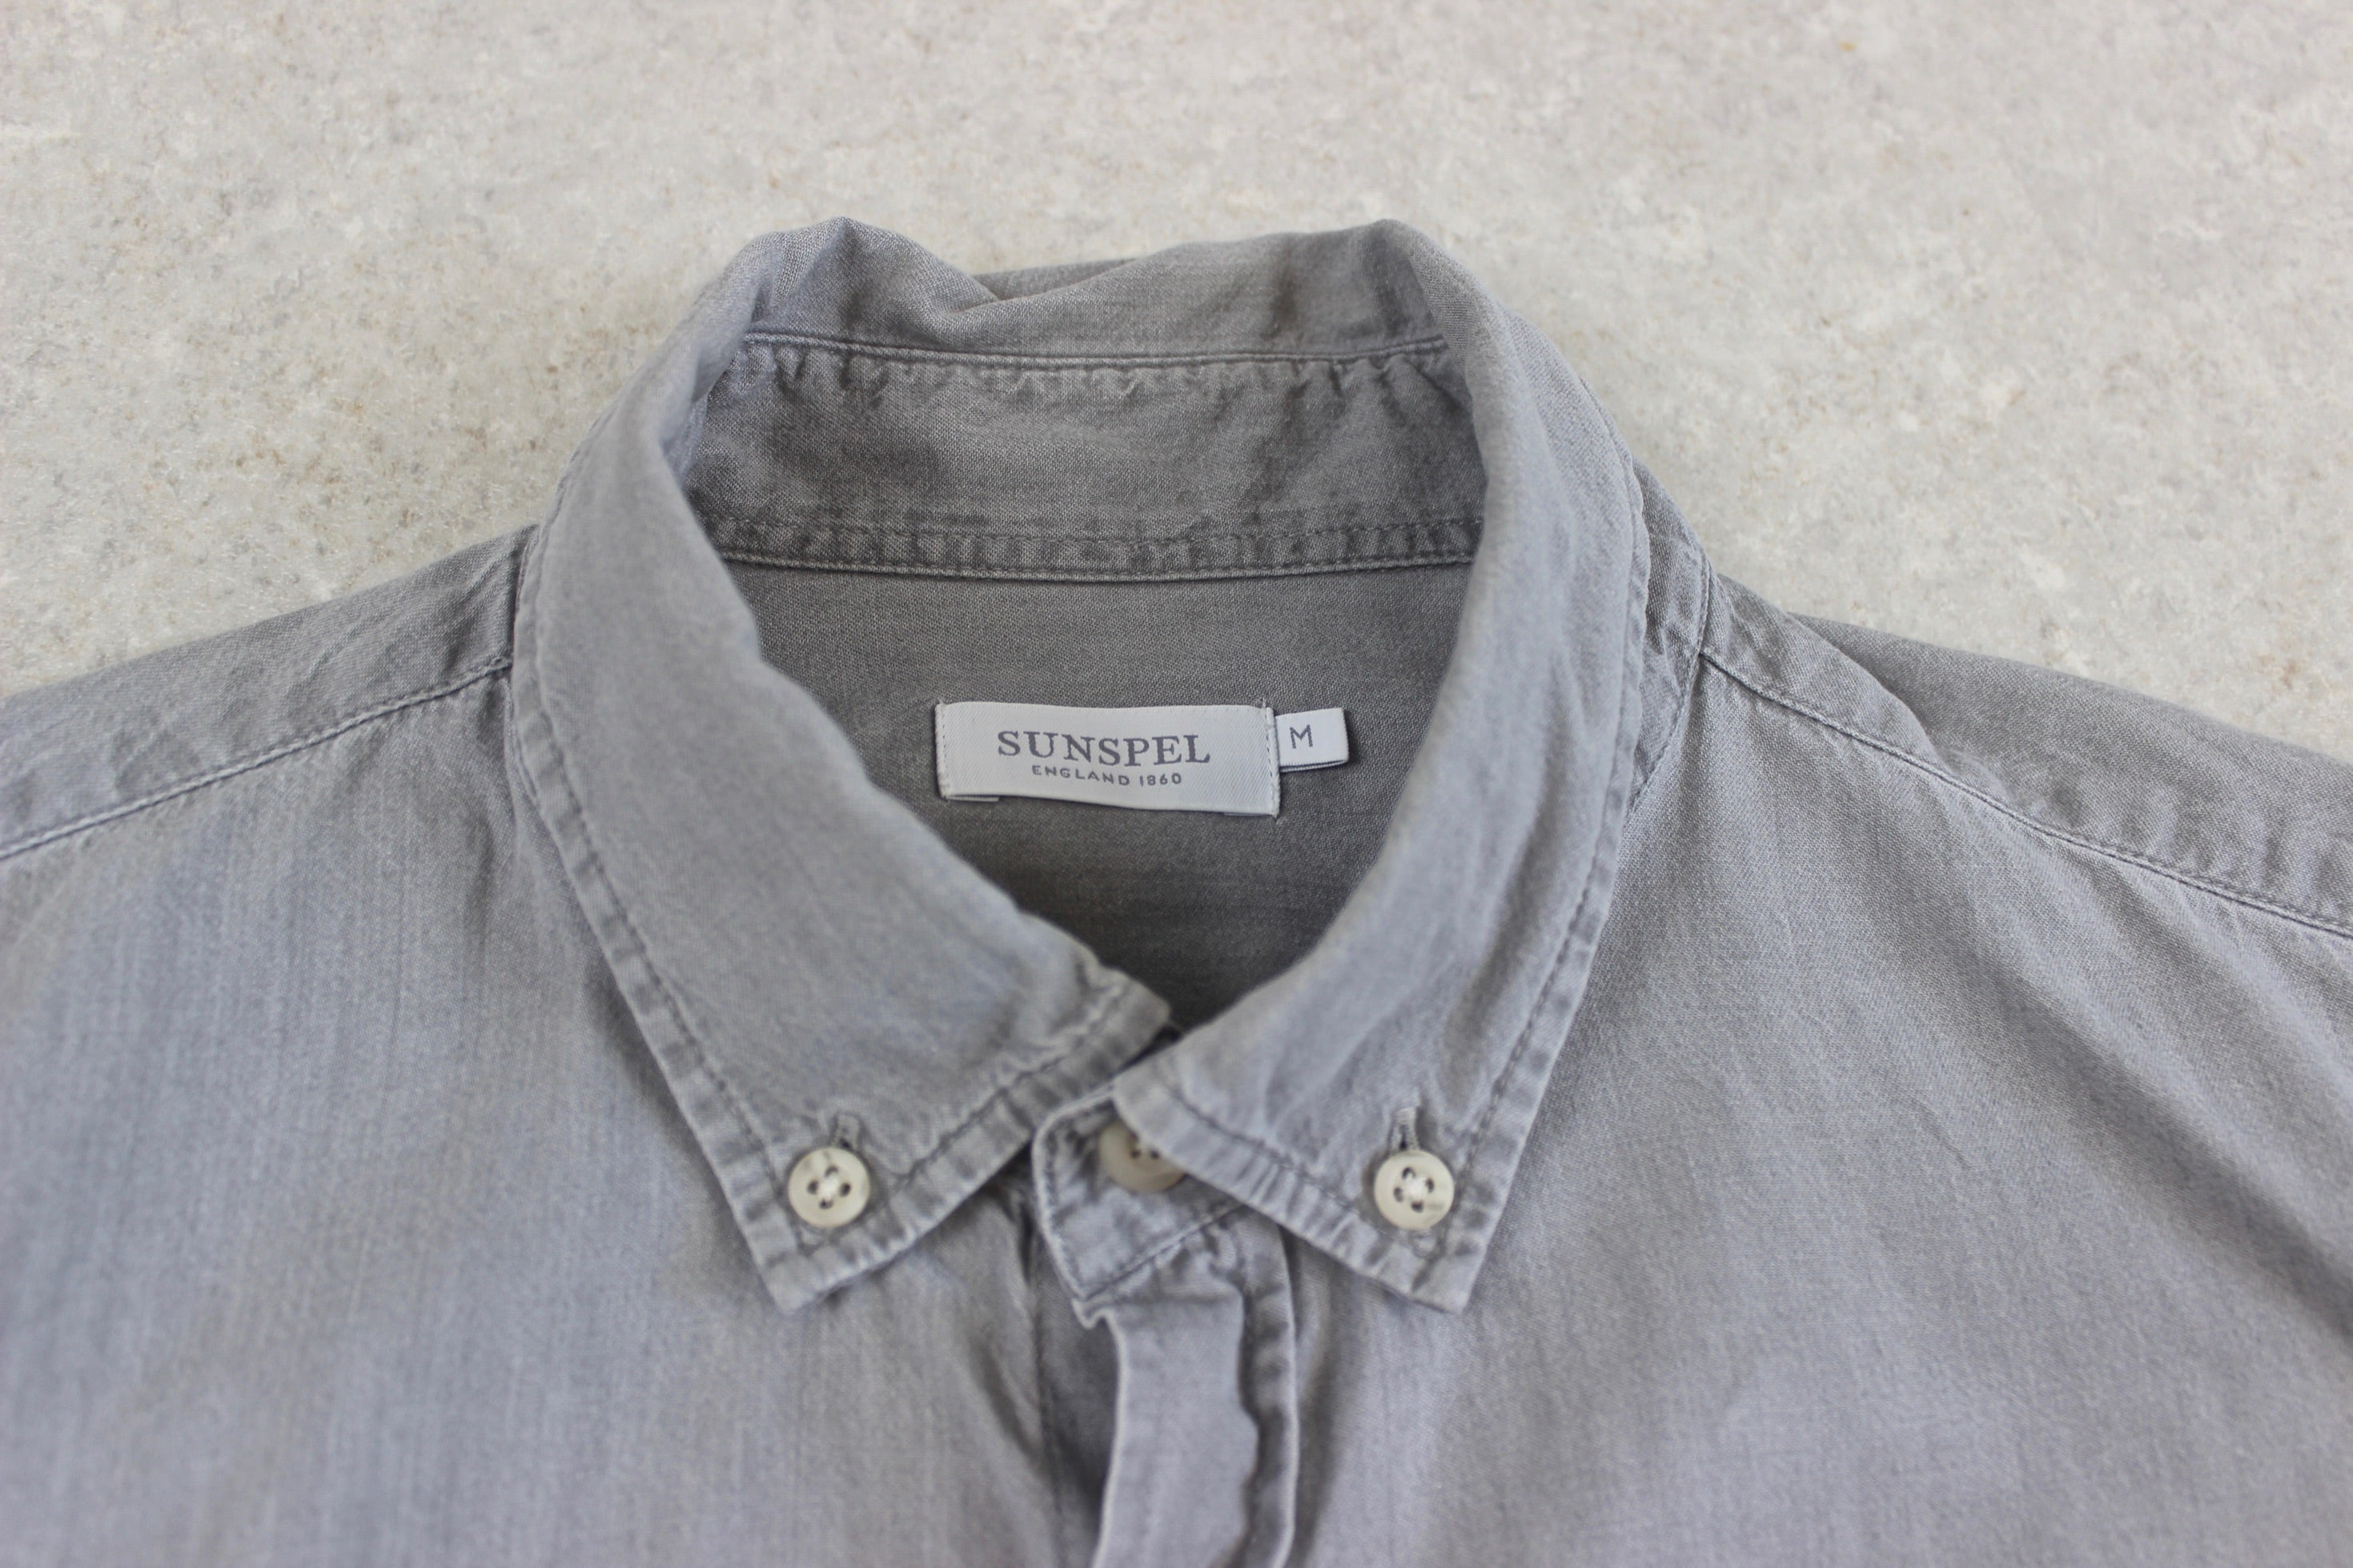 Sunspel - Shirt - Grey - Medium